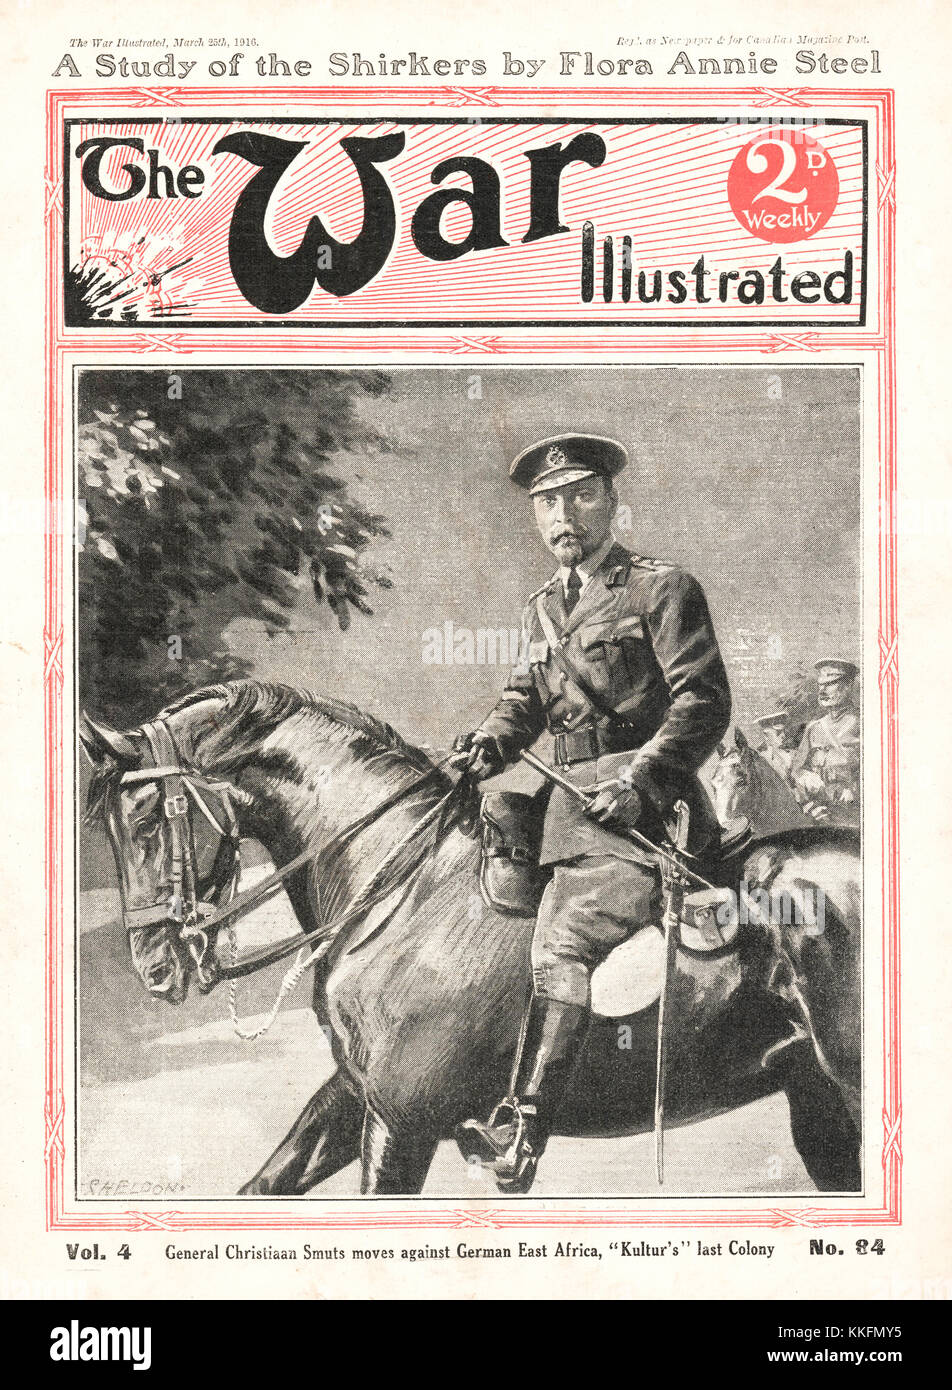 1916 War Illustrated General Christiaan Smuts in German East Africa - Stock Image